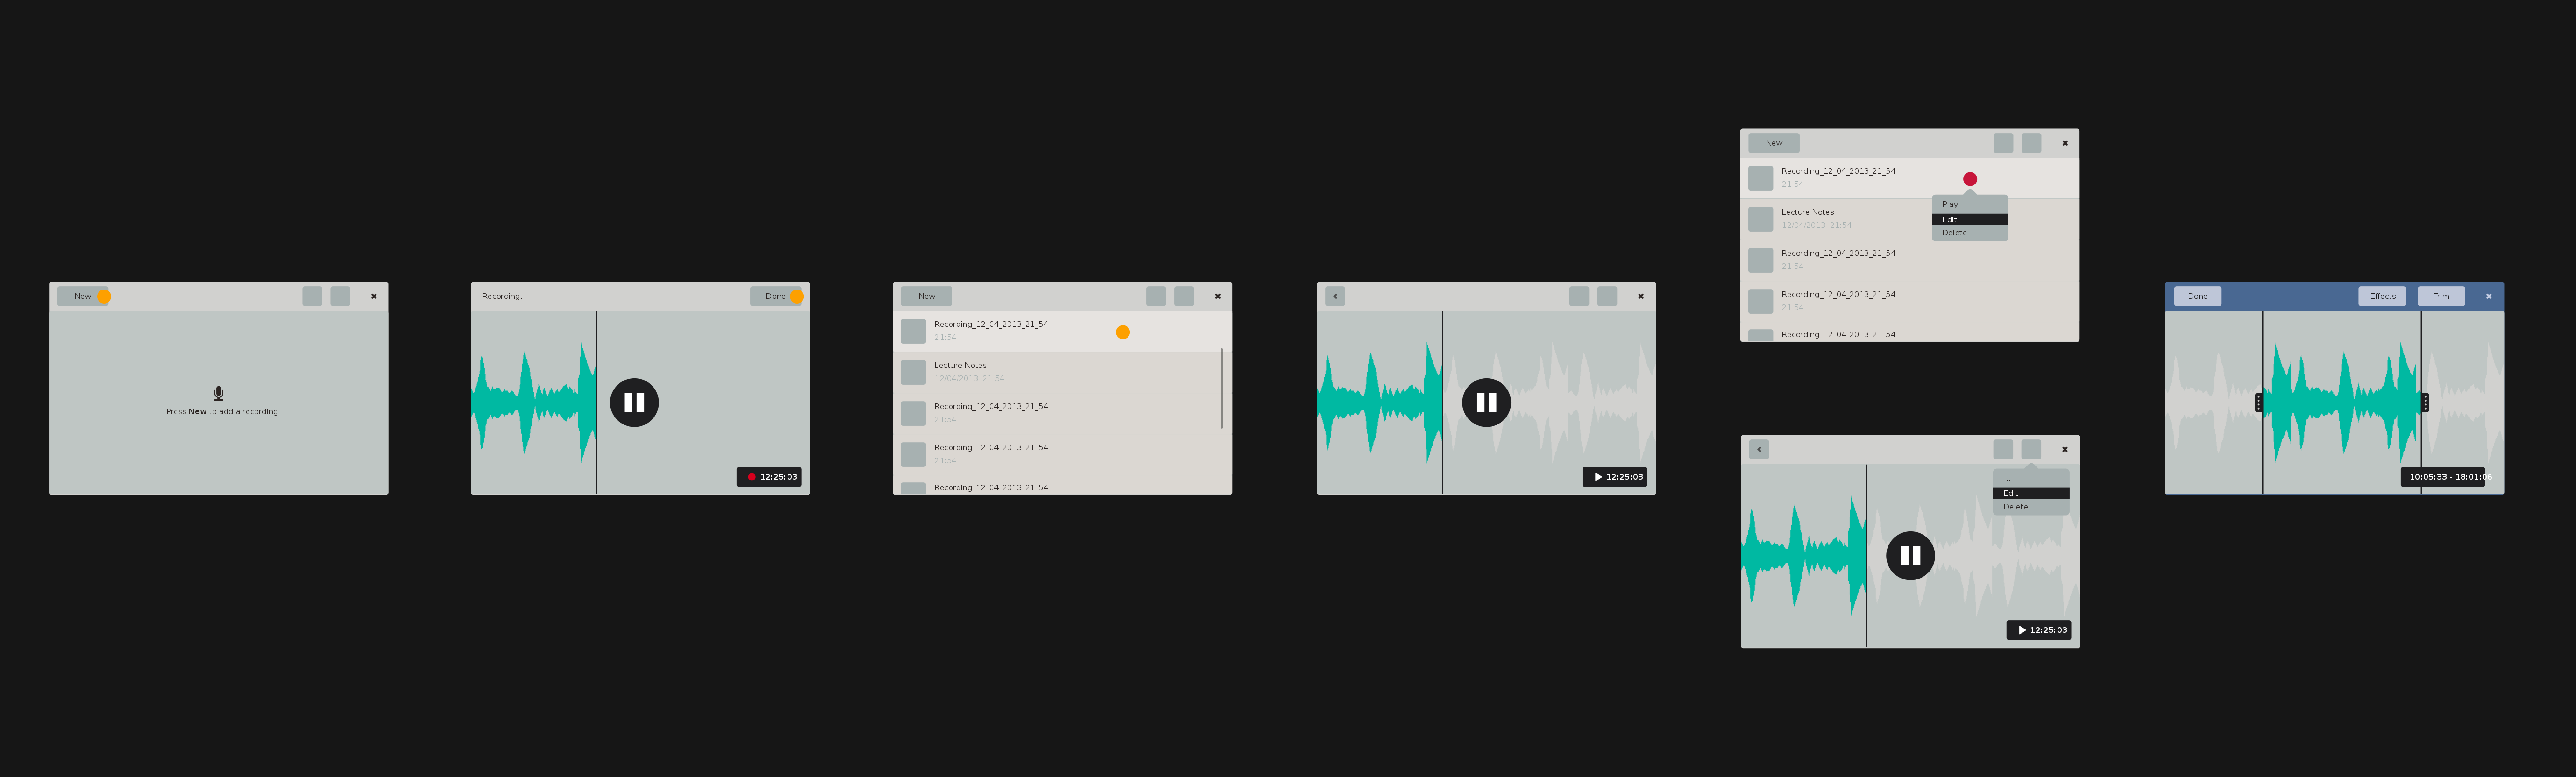 https://raw.github.com/gnome-design-team/gnome-mockups/20326c552a3564a0b411ef47d7b0a3c4558af48c/sound-recorder/v2/sound-recorder-wireframe-reda.png